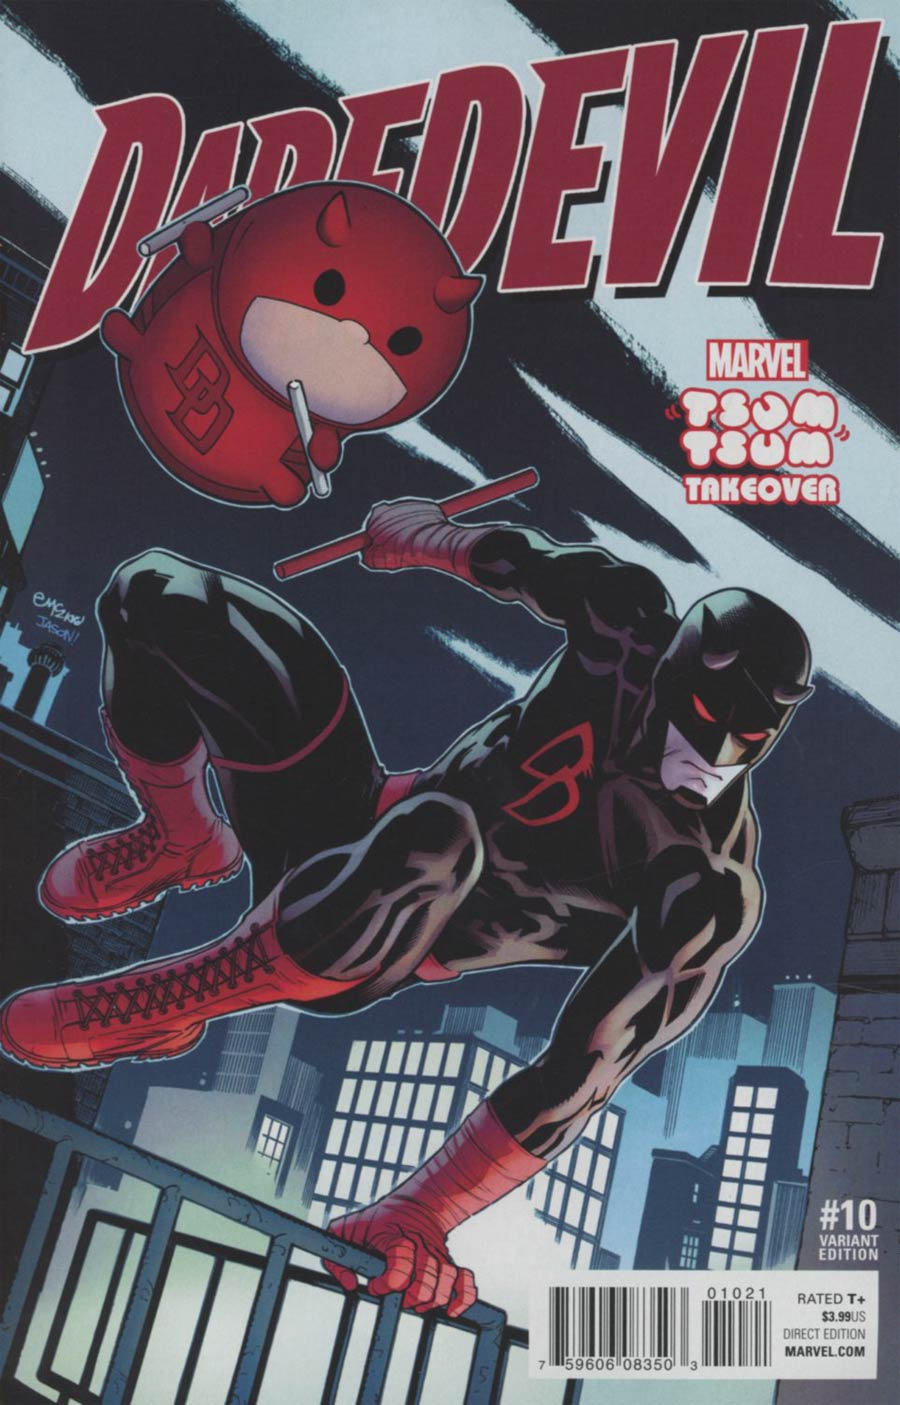 Daredevil Vol 5 #10 Cover B Variant Ed McGuinness Marvel Tsum Tsum Takeover Cover